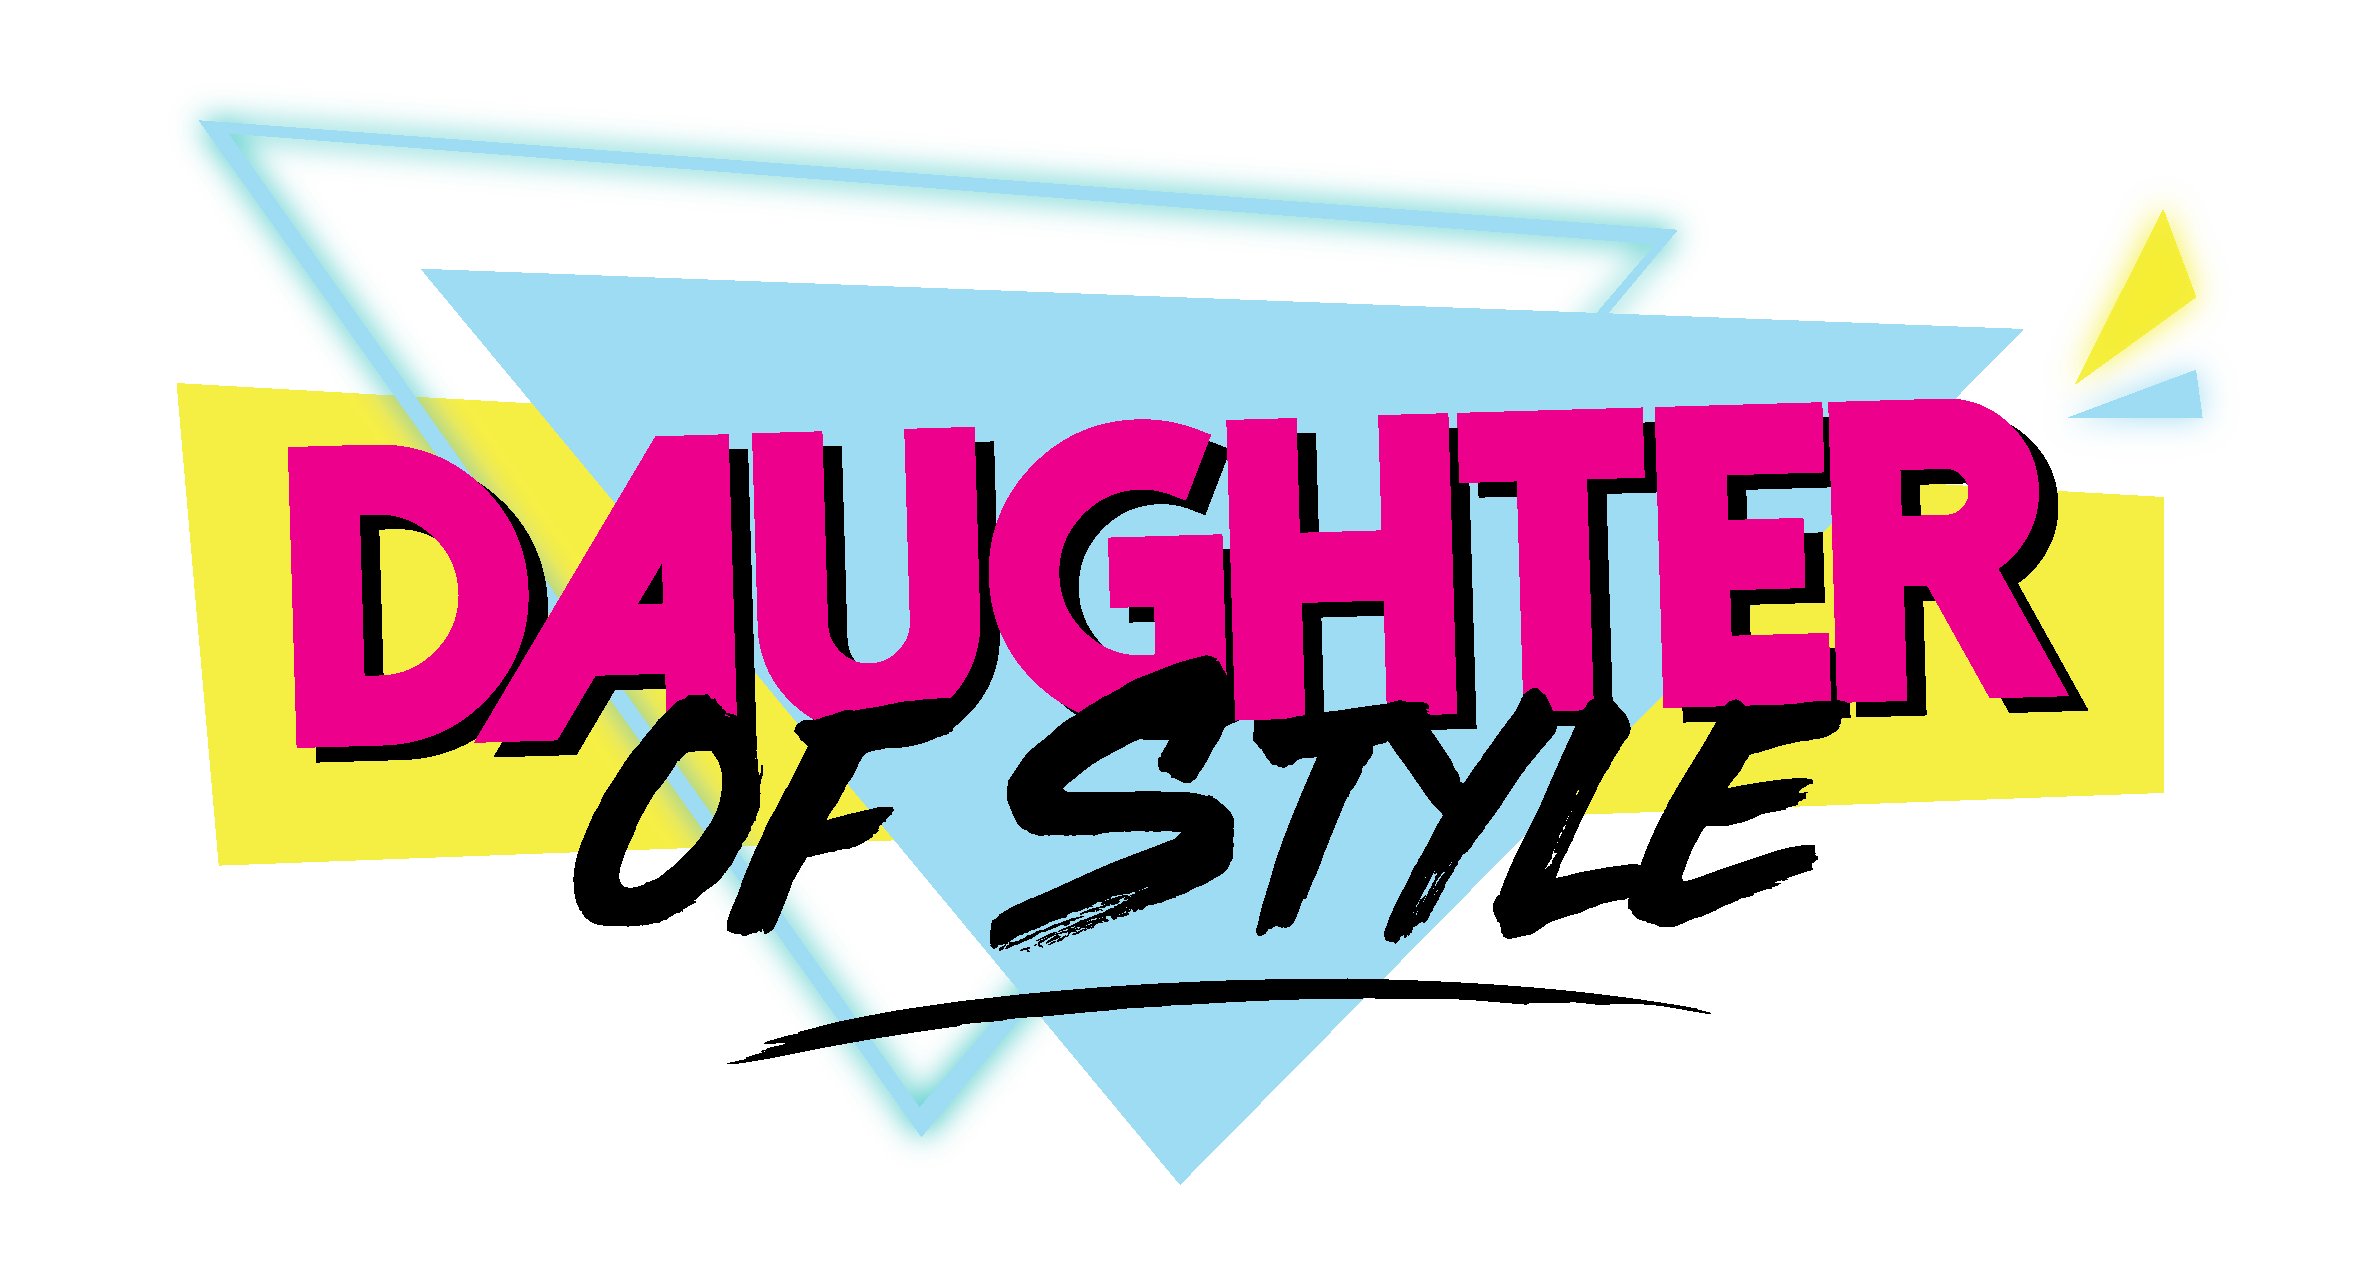 Daughter of Style